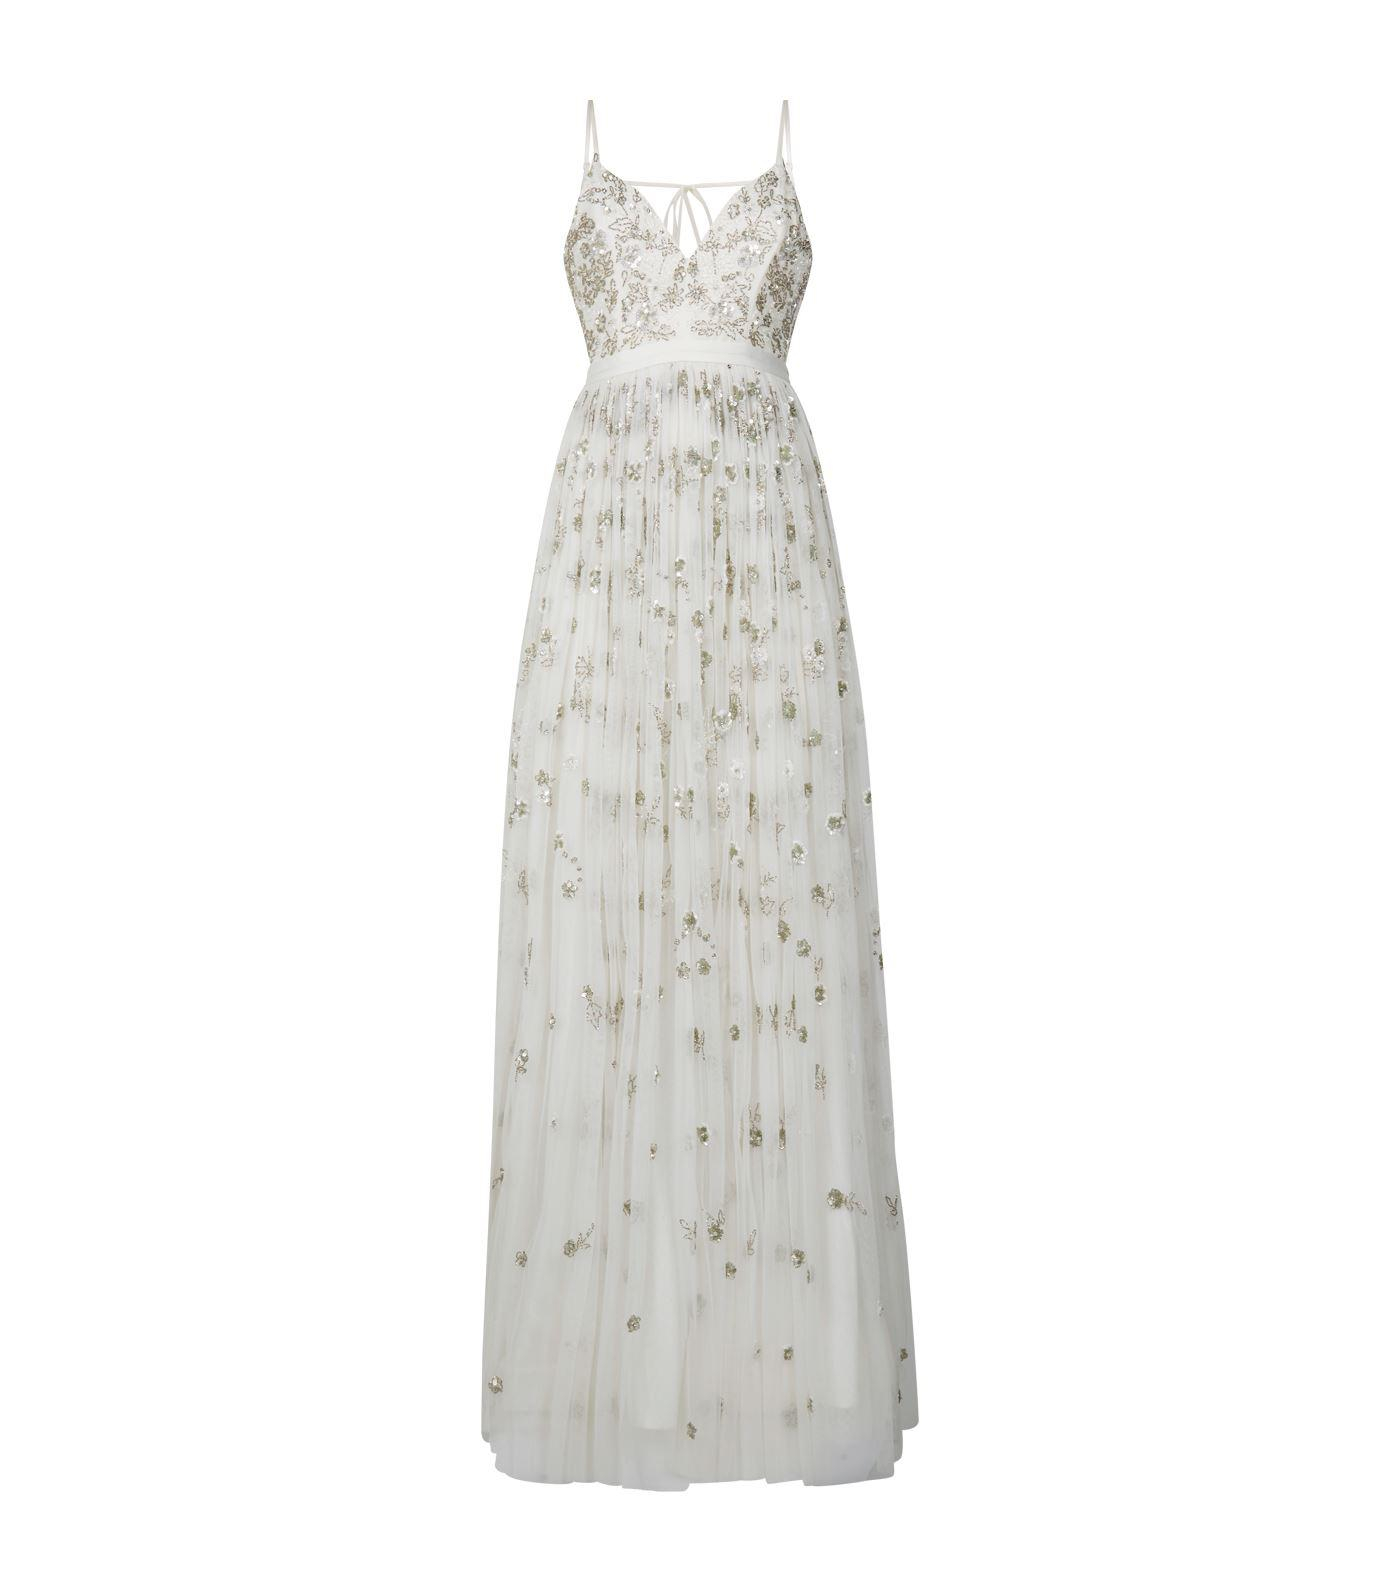 63172cc83f2f Lyst - Needle   Thread Embellished Bridal Gown in White